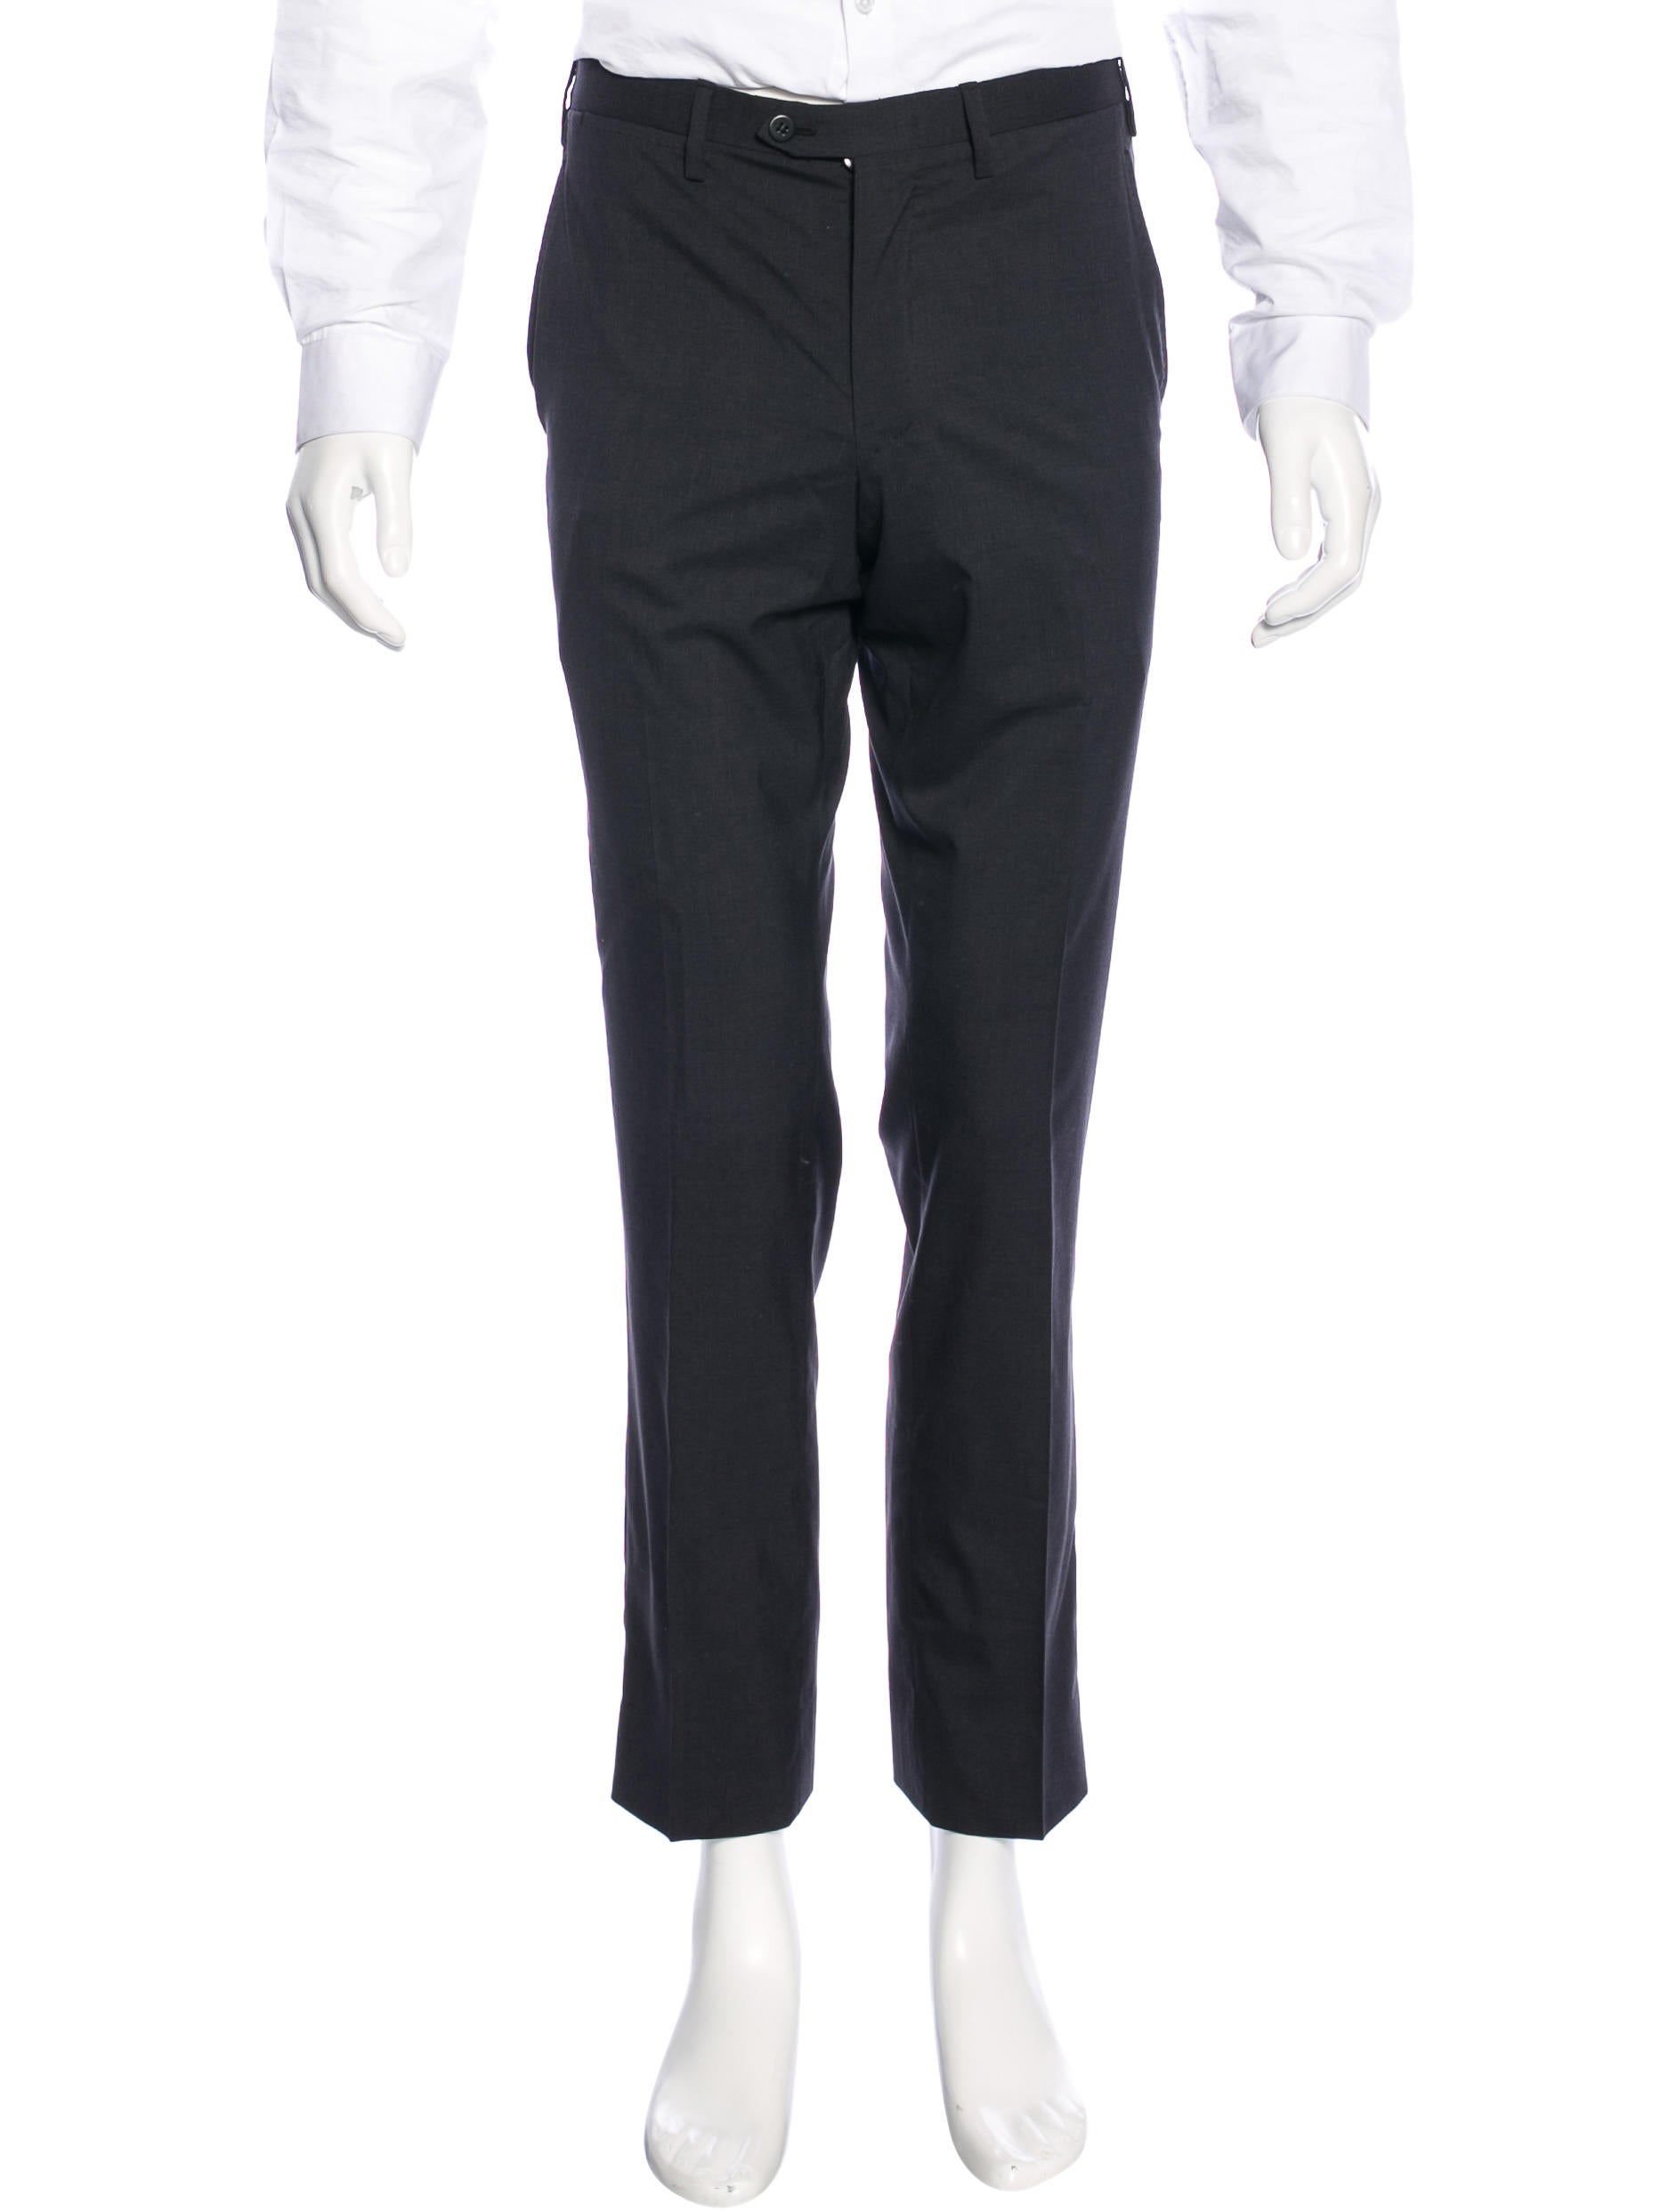 Free shipping on men's dress pants at r0nd.tk Shop flat-front & pleated pants in cotton, wool & more. Totally free shipping & returns.